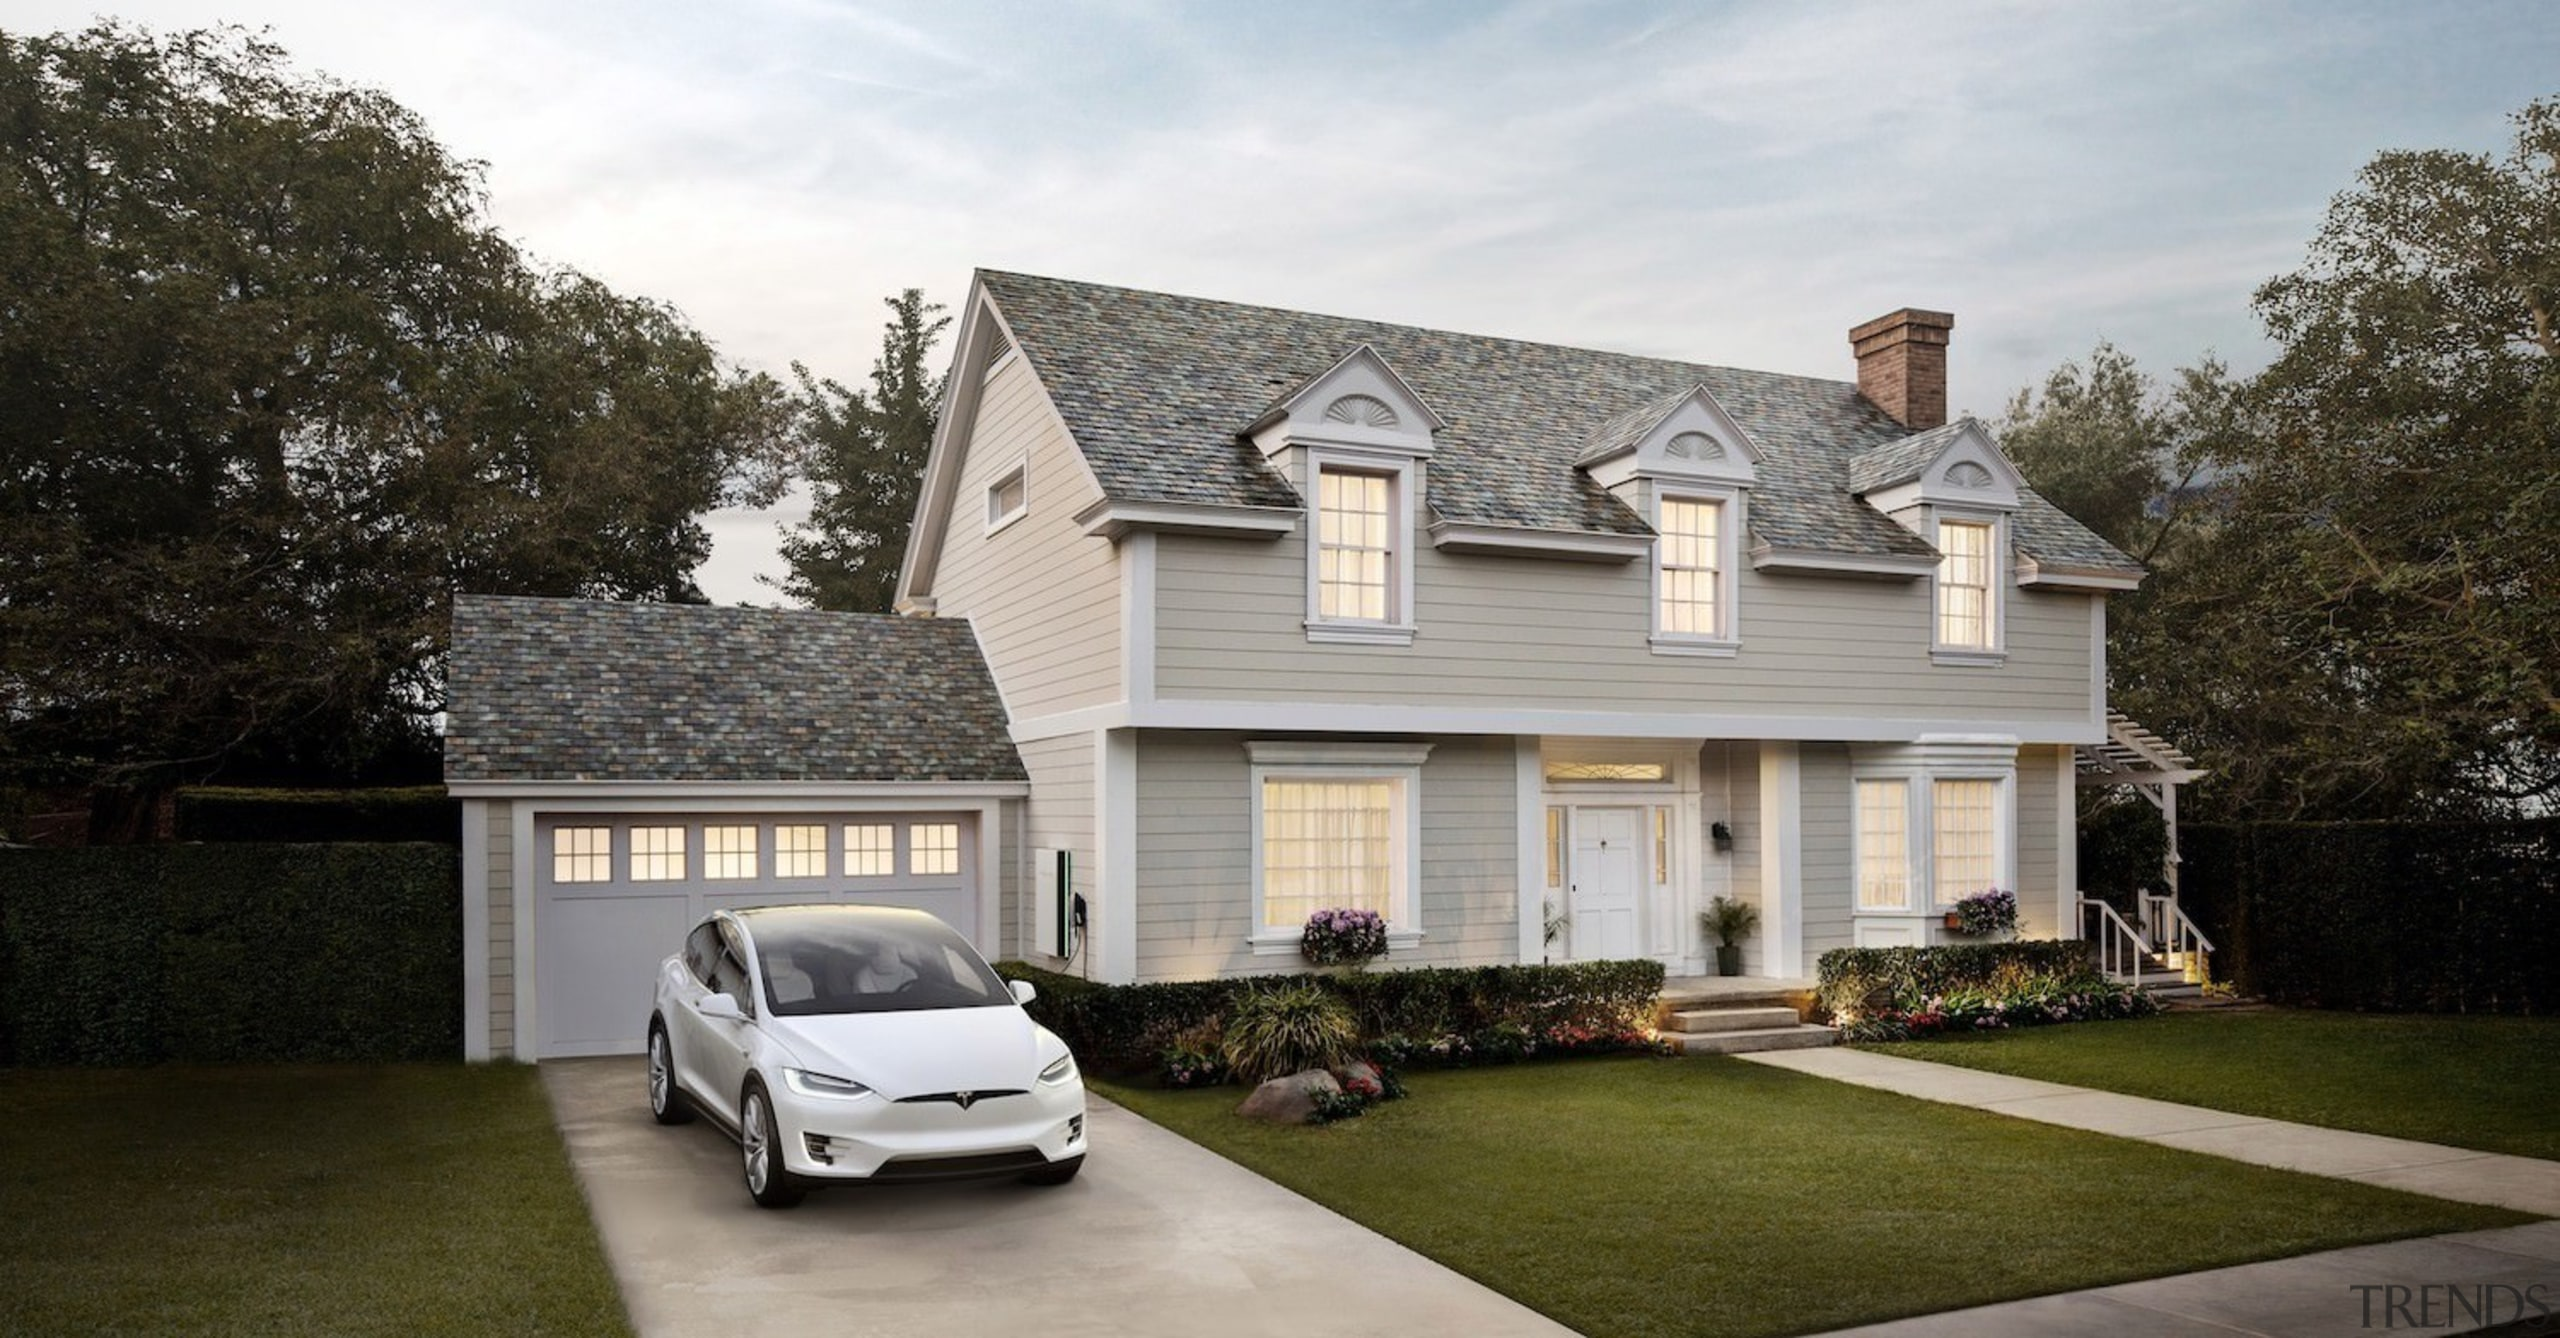 A home with Tesla Solar Roof tiles installed building, cottage, elevation, estate, facade, family car, home, house, luxury vehicle, property, real estate, residential area, roof, siding, suburb, window, gray, brown